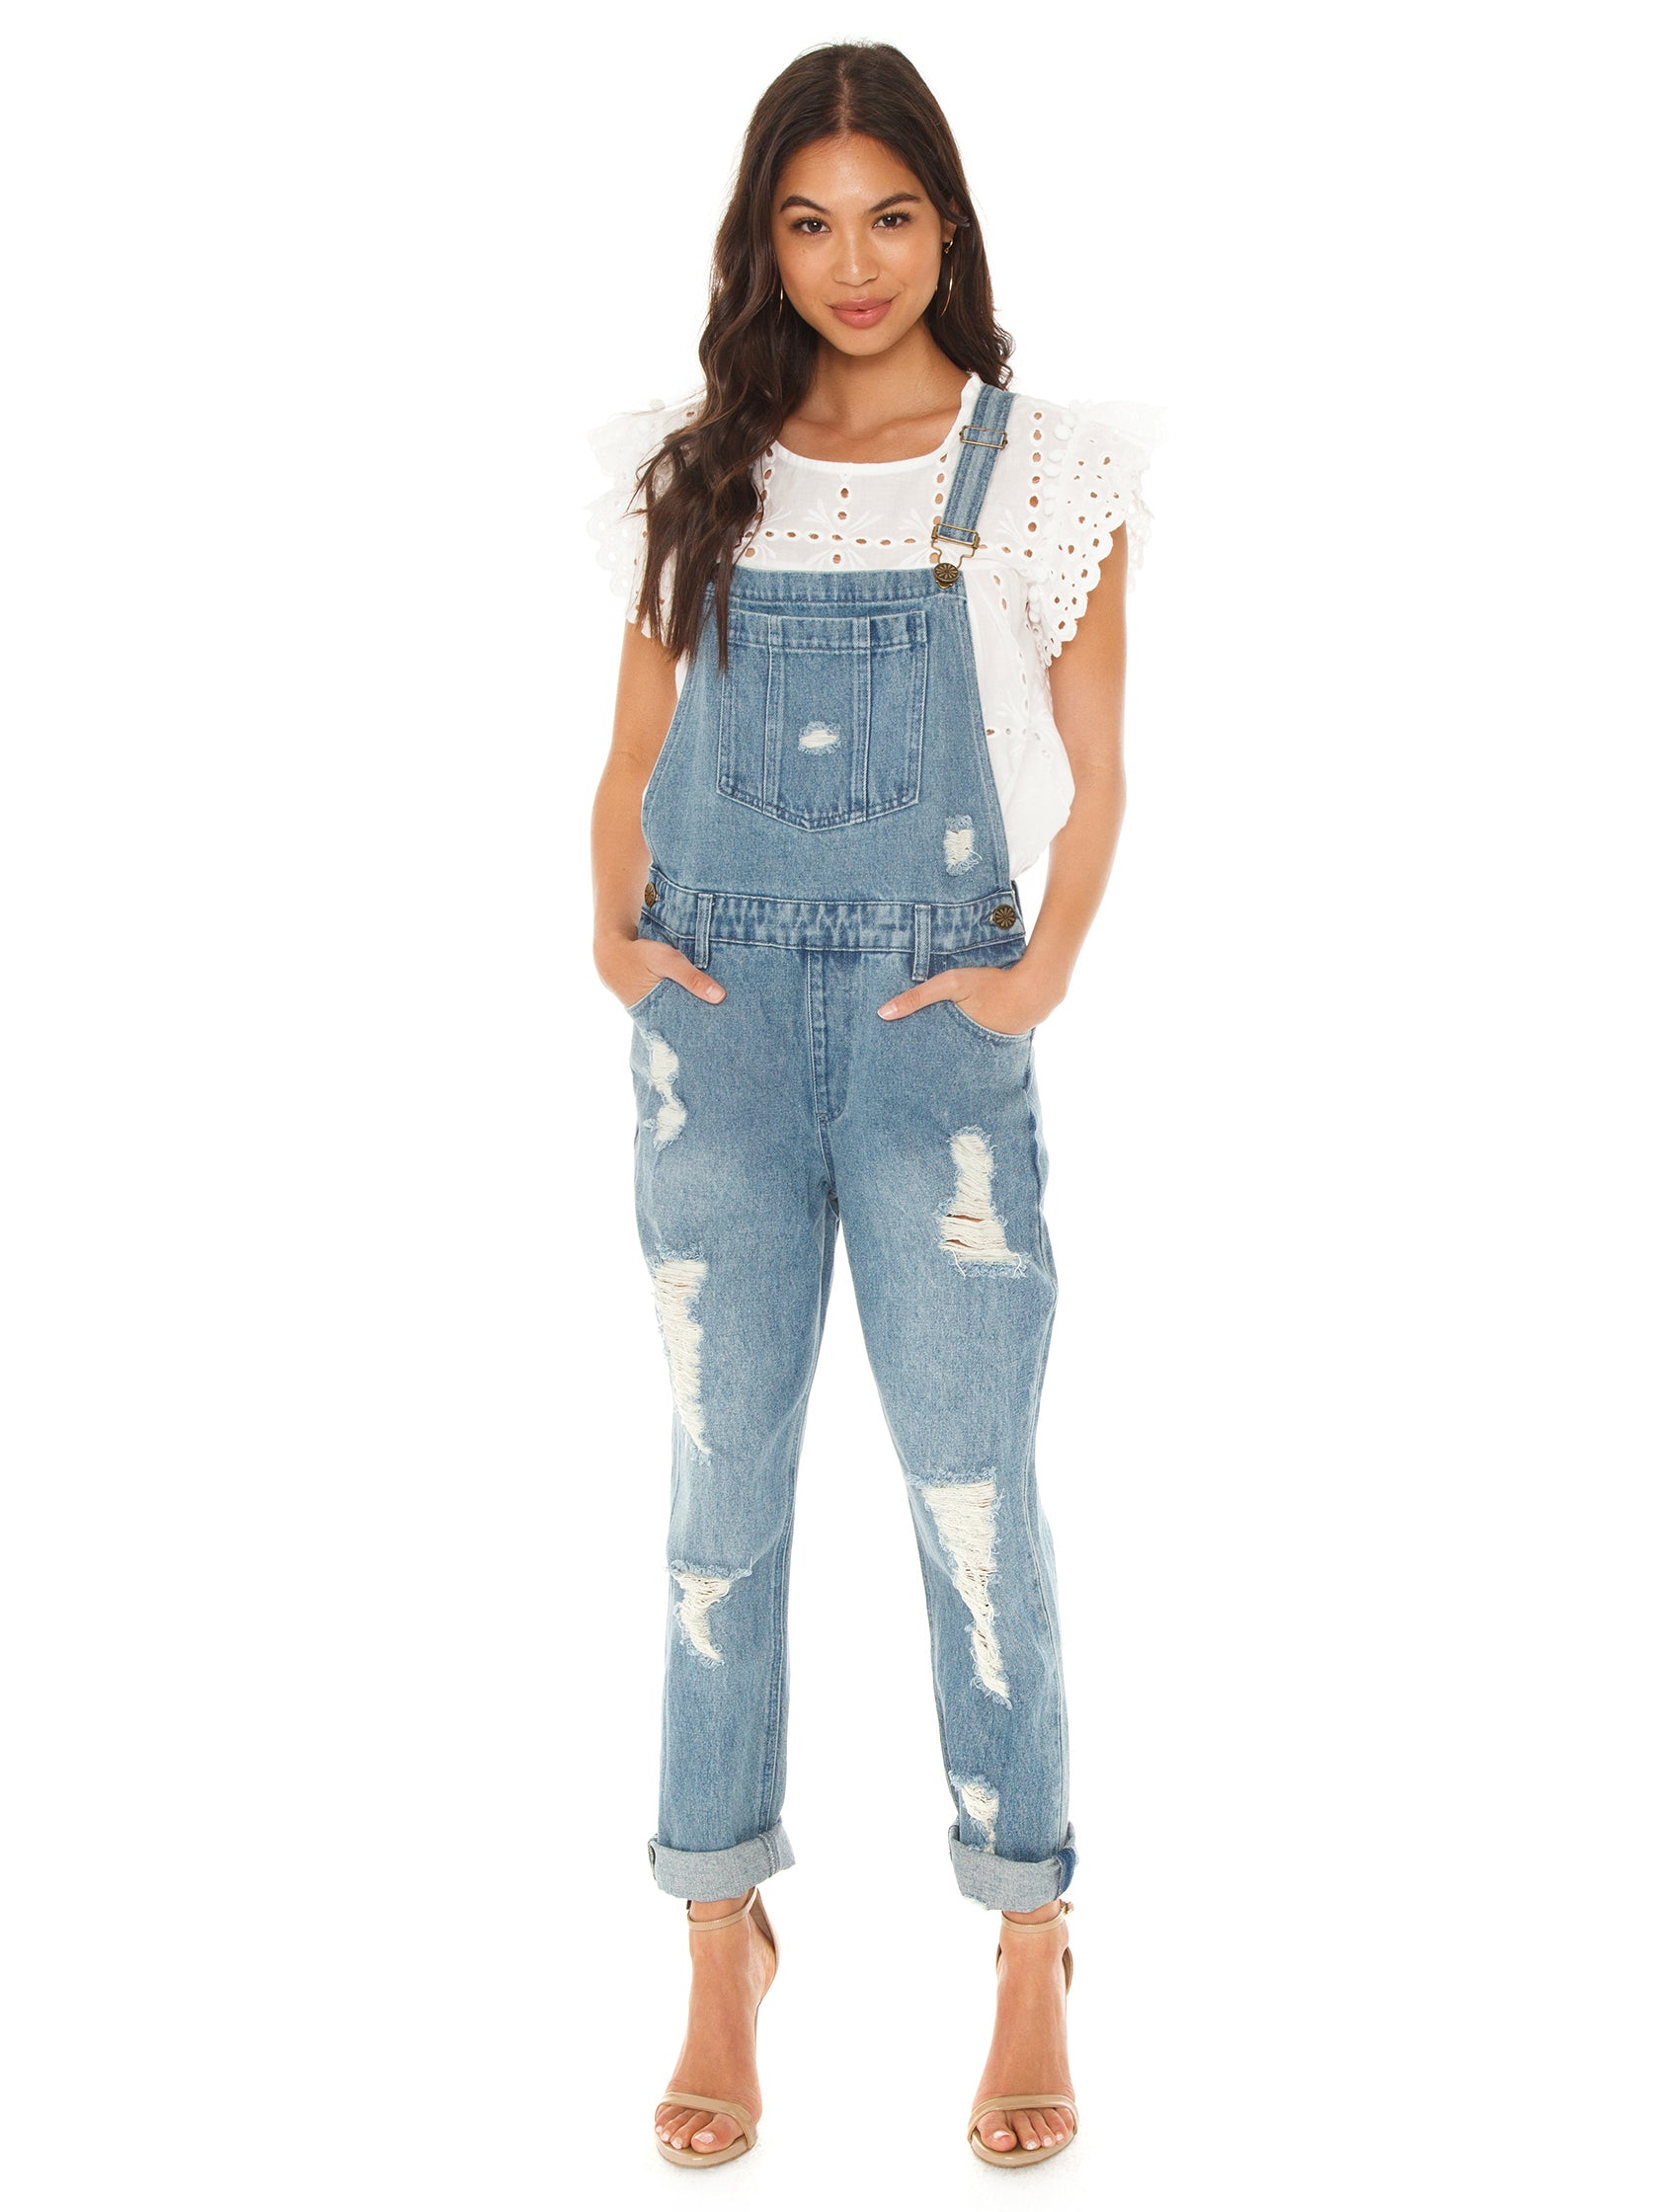 Women wearing a overalls rental from Show Me Your Mumu called Alma Overalls